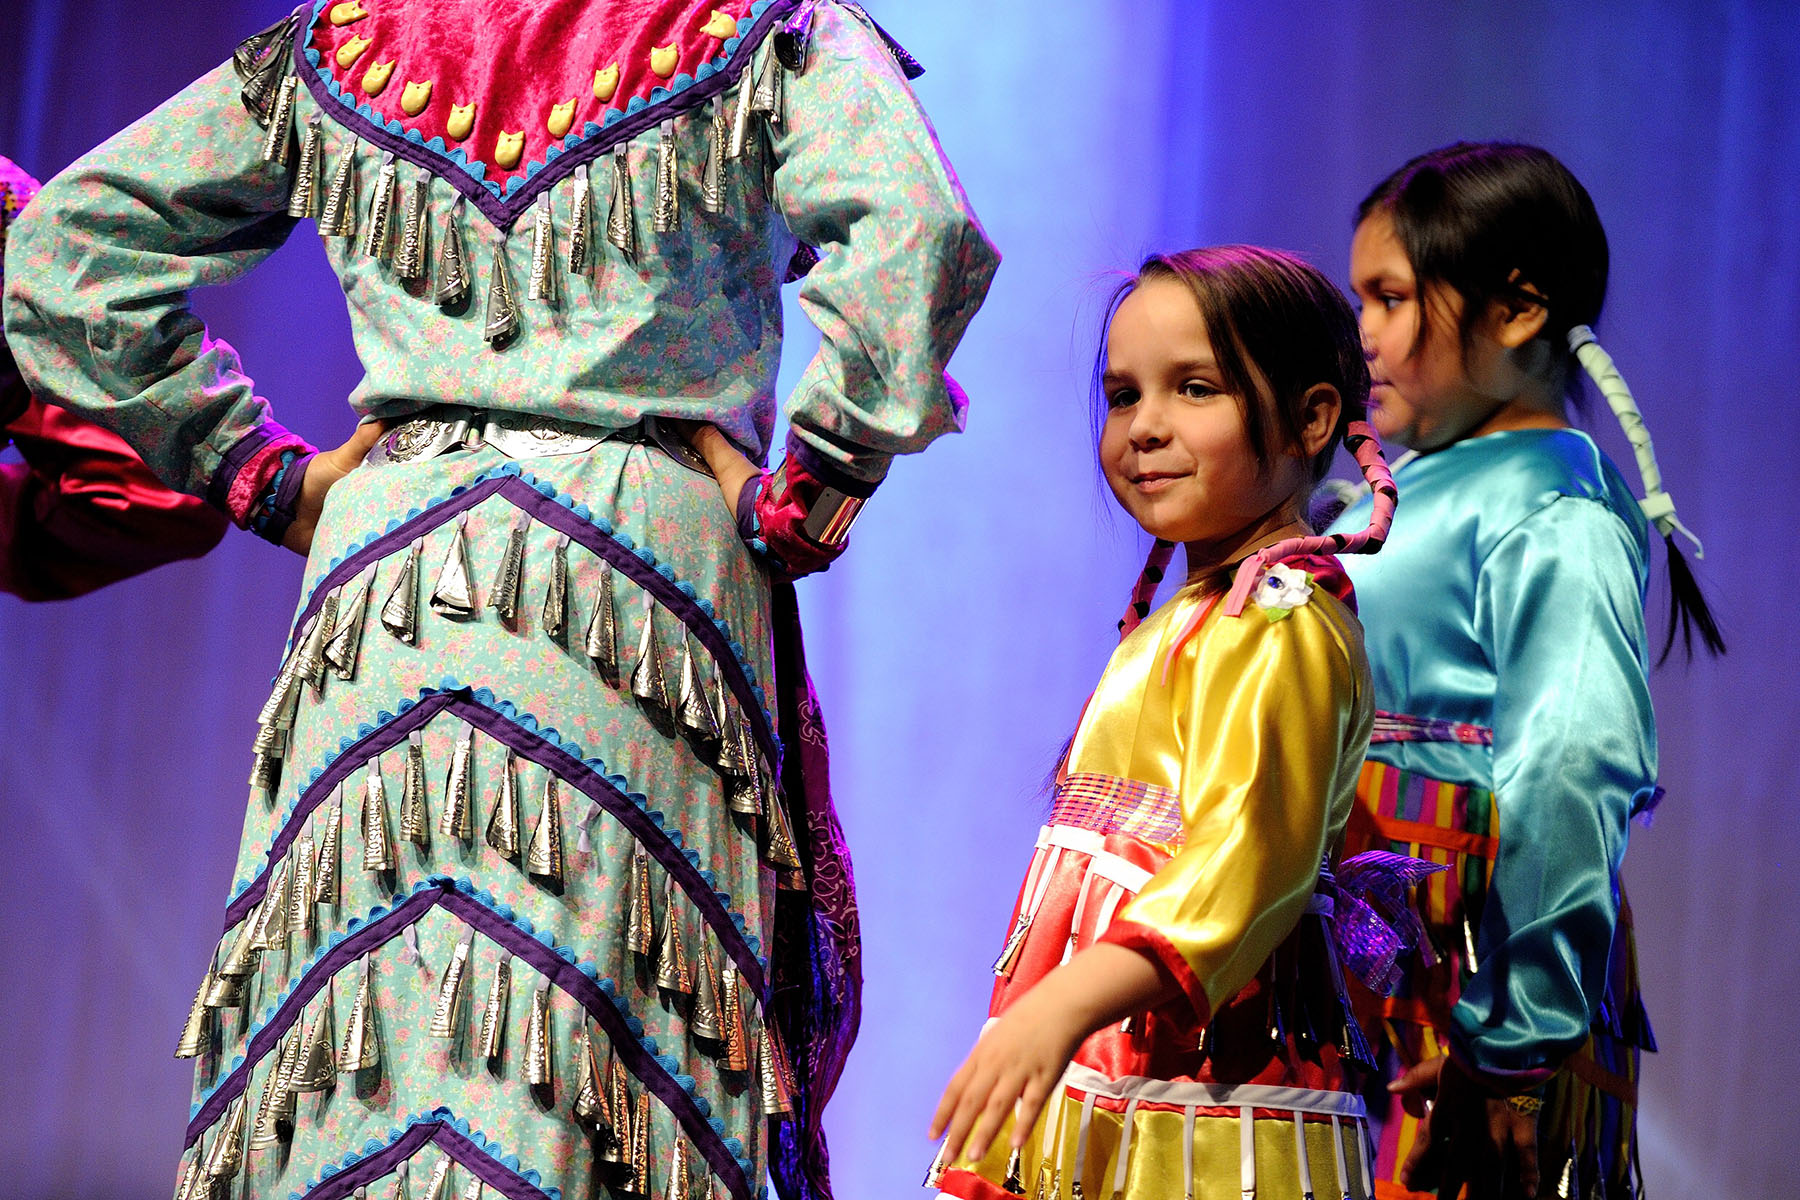 The TRC hosts events across the country to raise awareness about the residential school system and its lasting legacy. The TRC is holding its seventh and final national event from March 27 to 30, 2014.